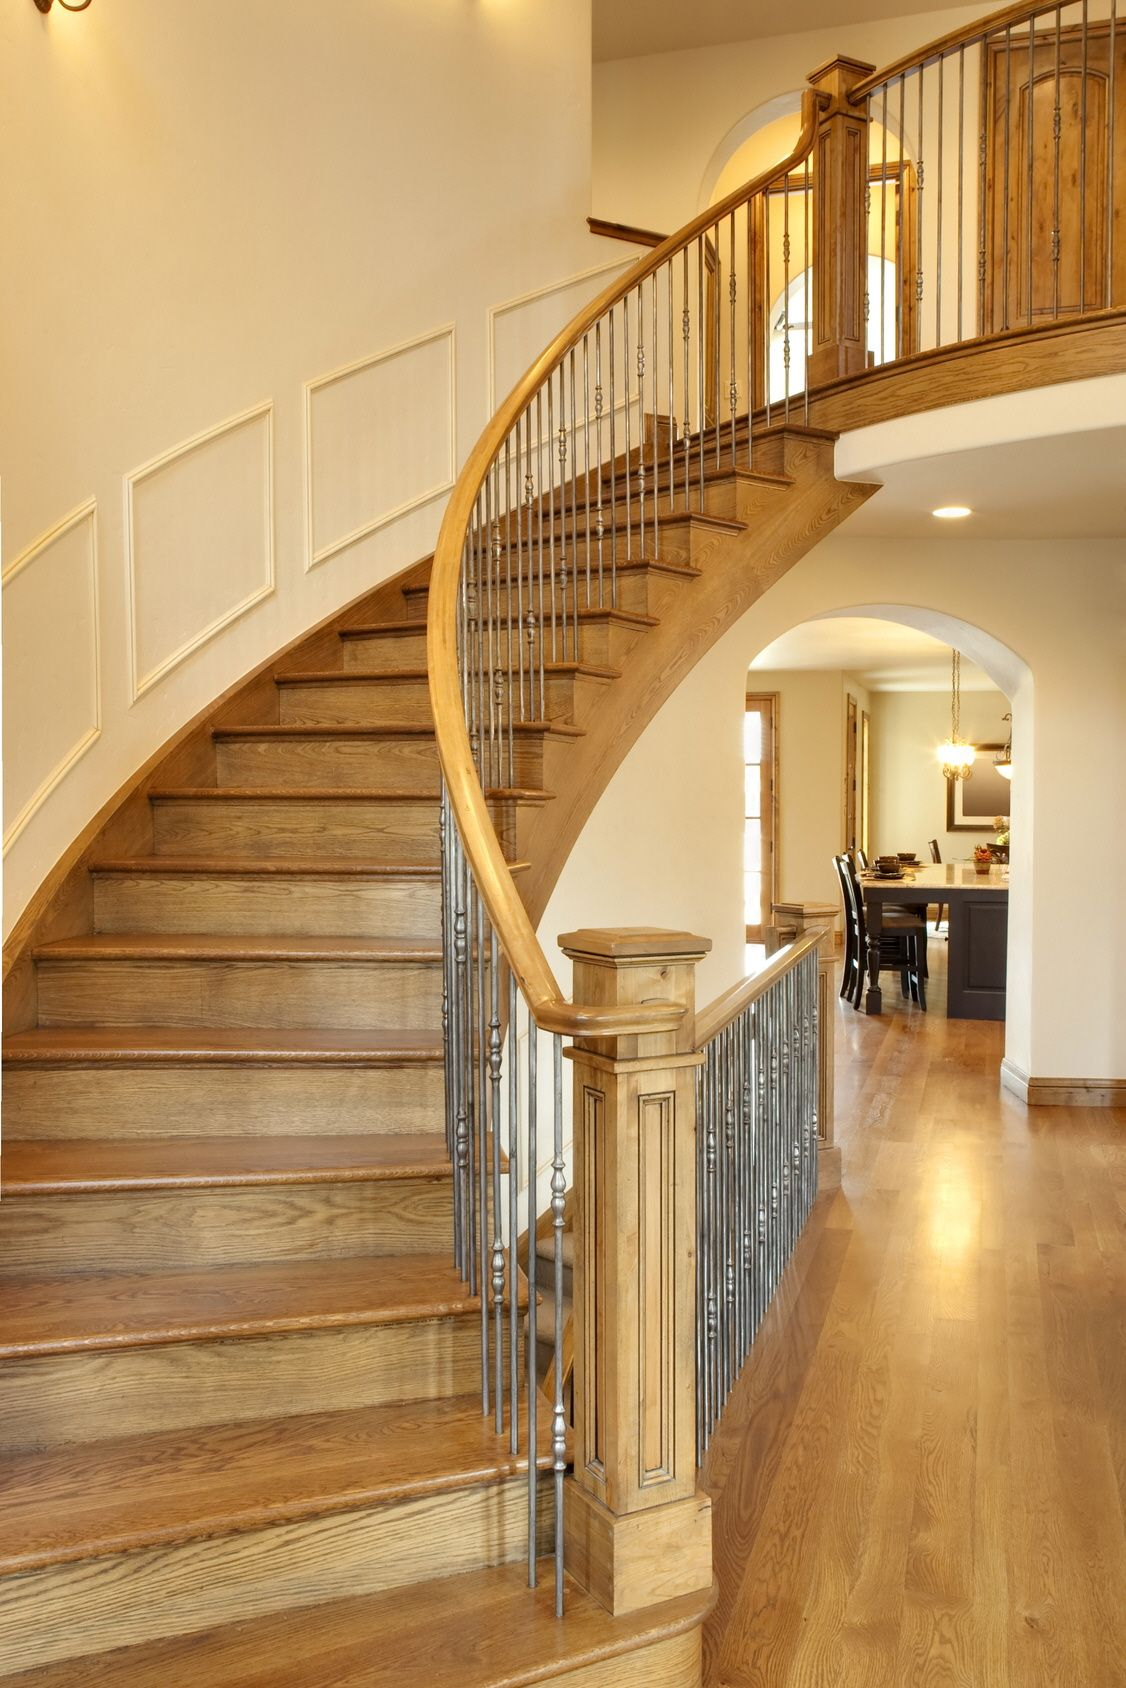 Fantastic Wooden Staircase The Center Piece Of The House